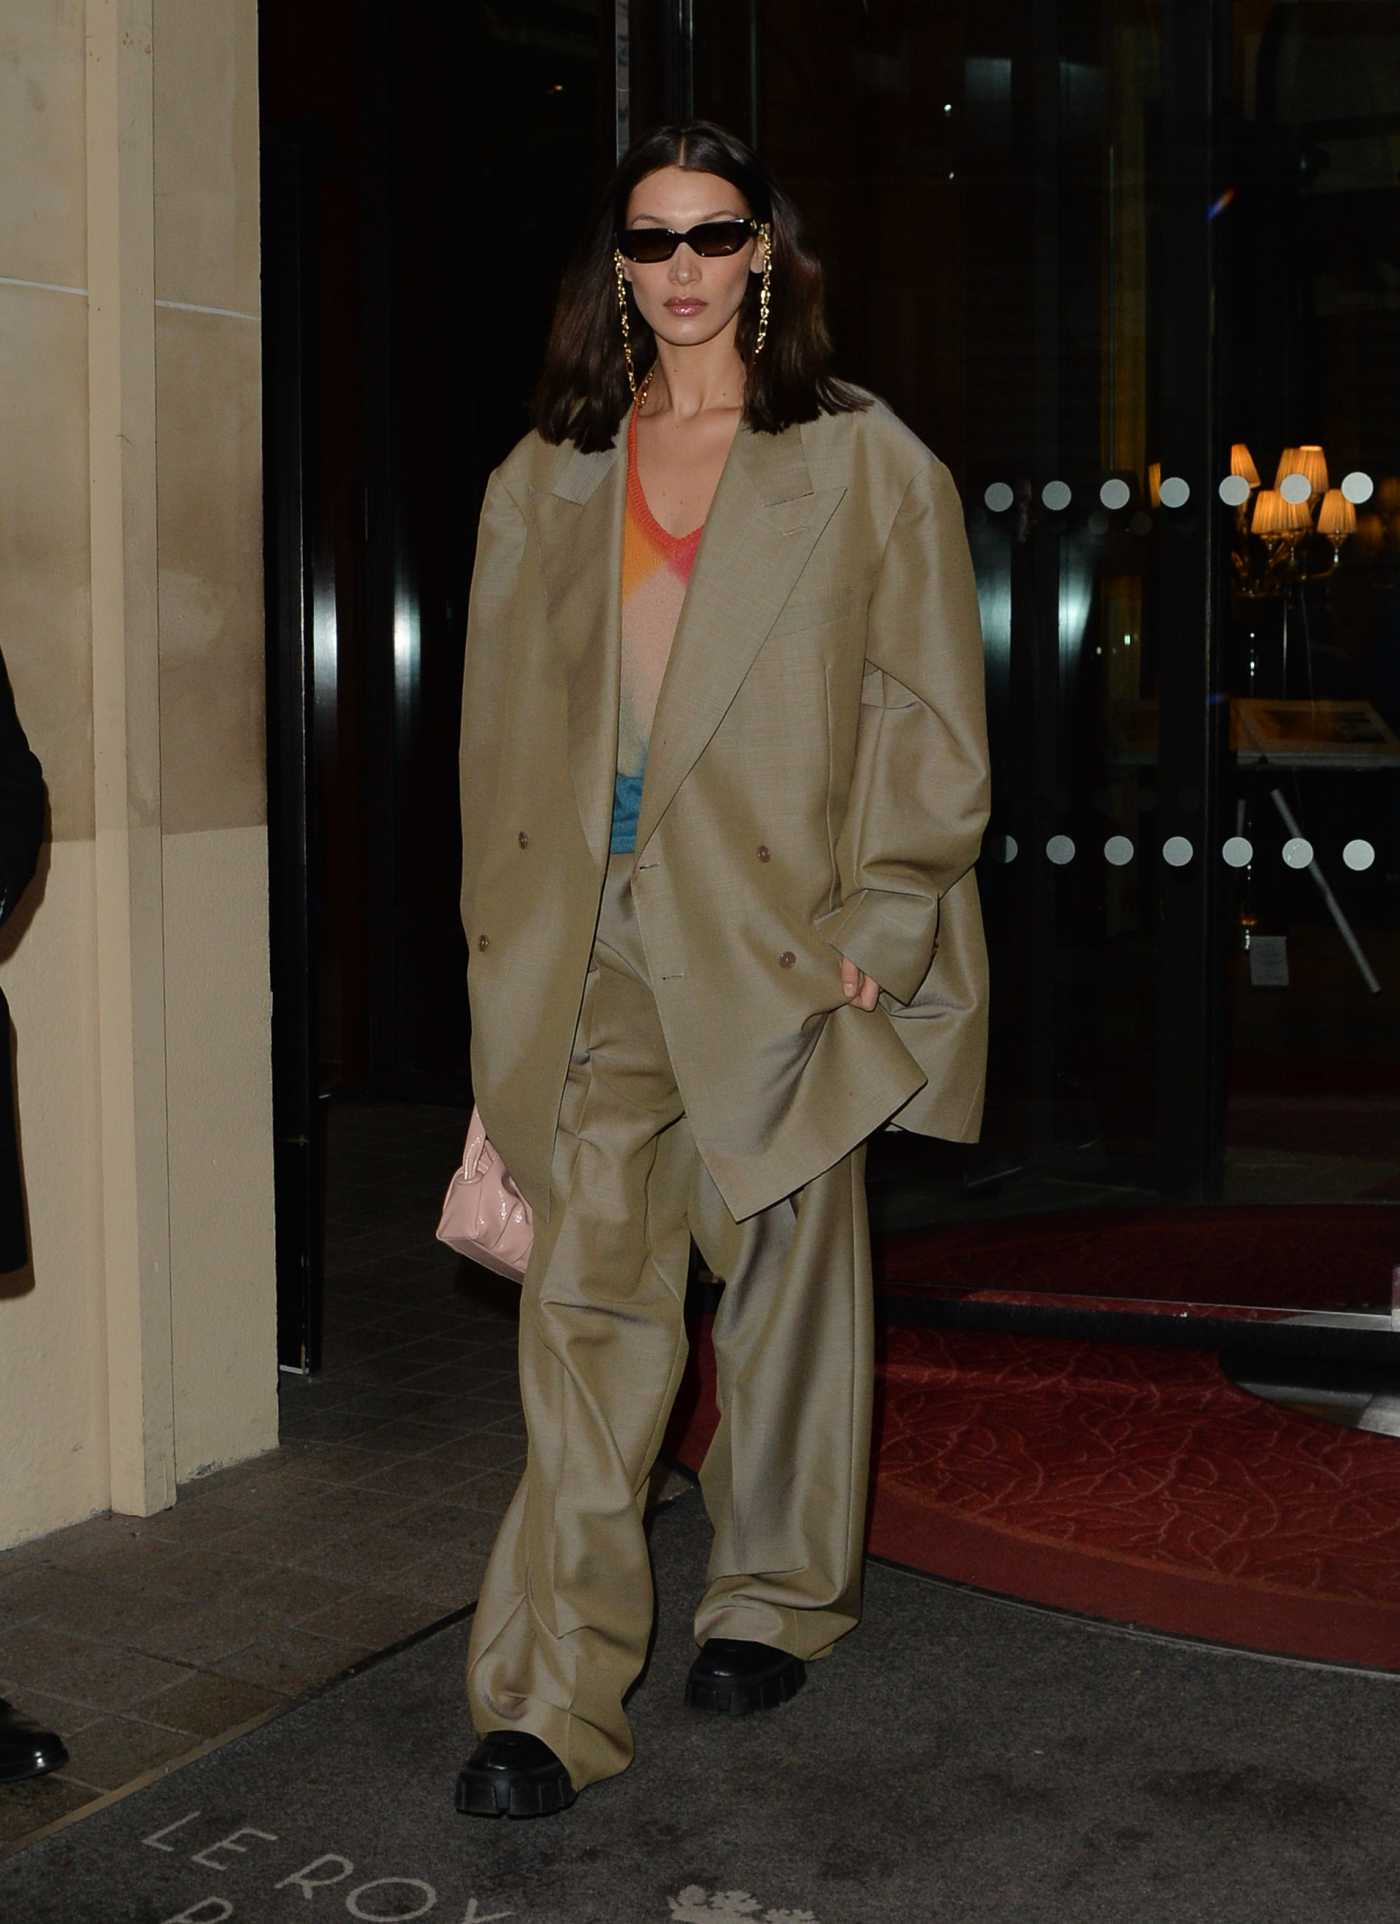 Bella Hadid in a Beige Oversized Suit Leaves Her Hotel in Paris 02/28/2020